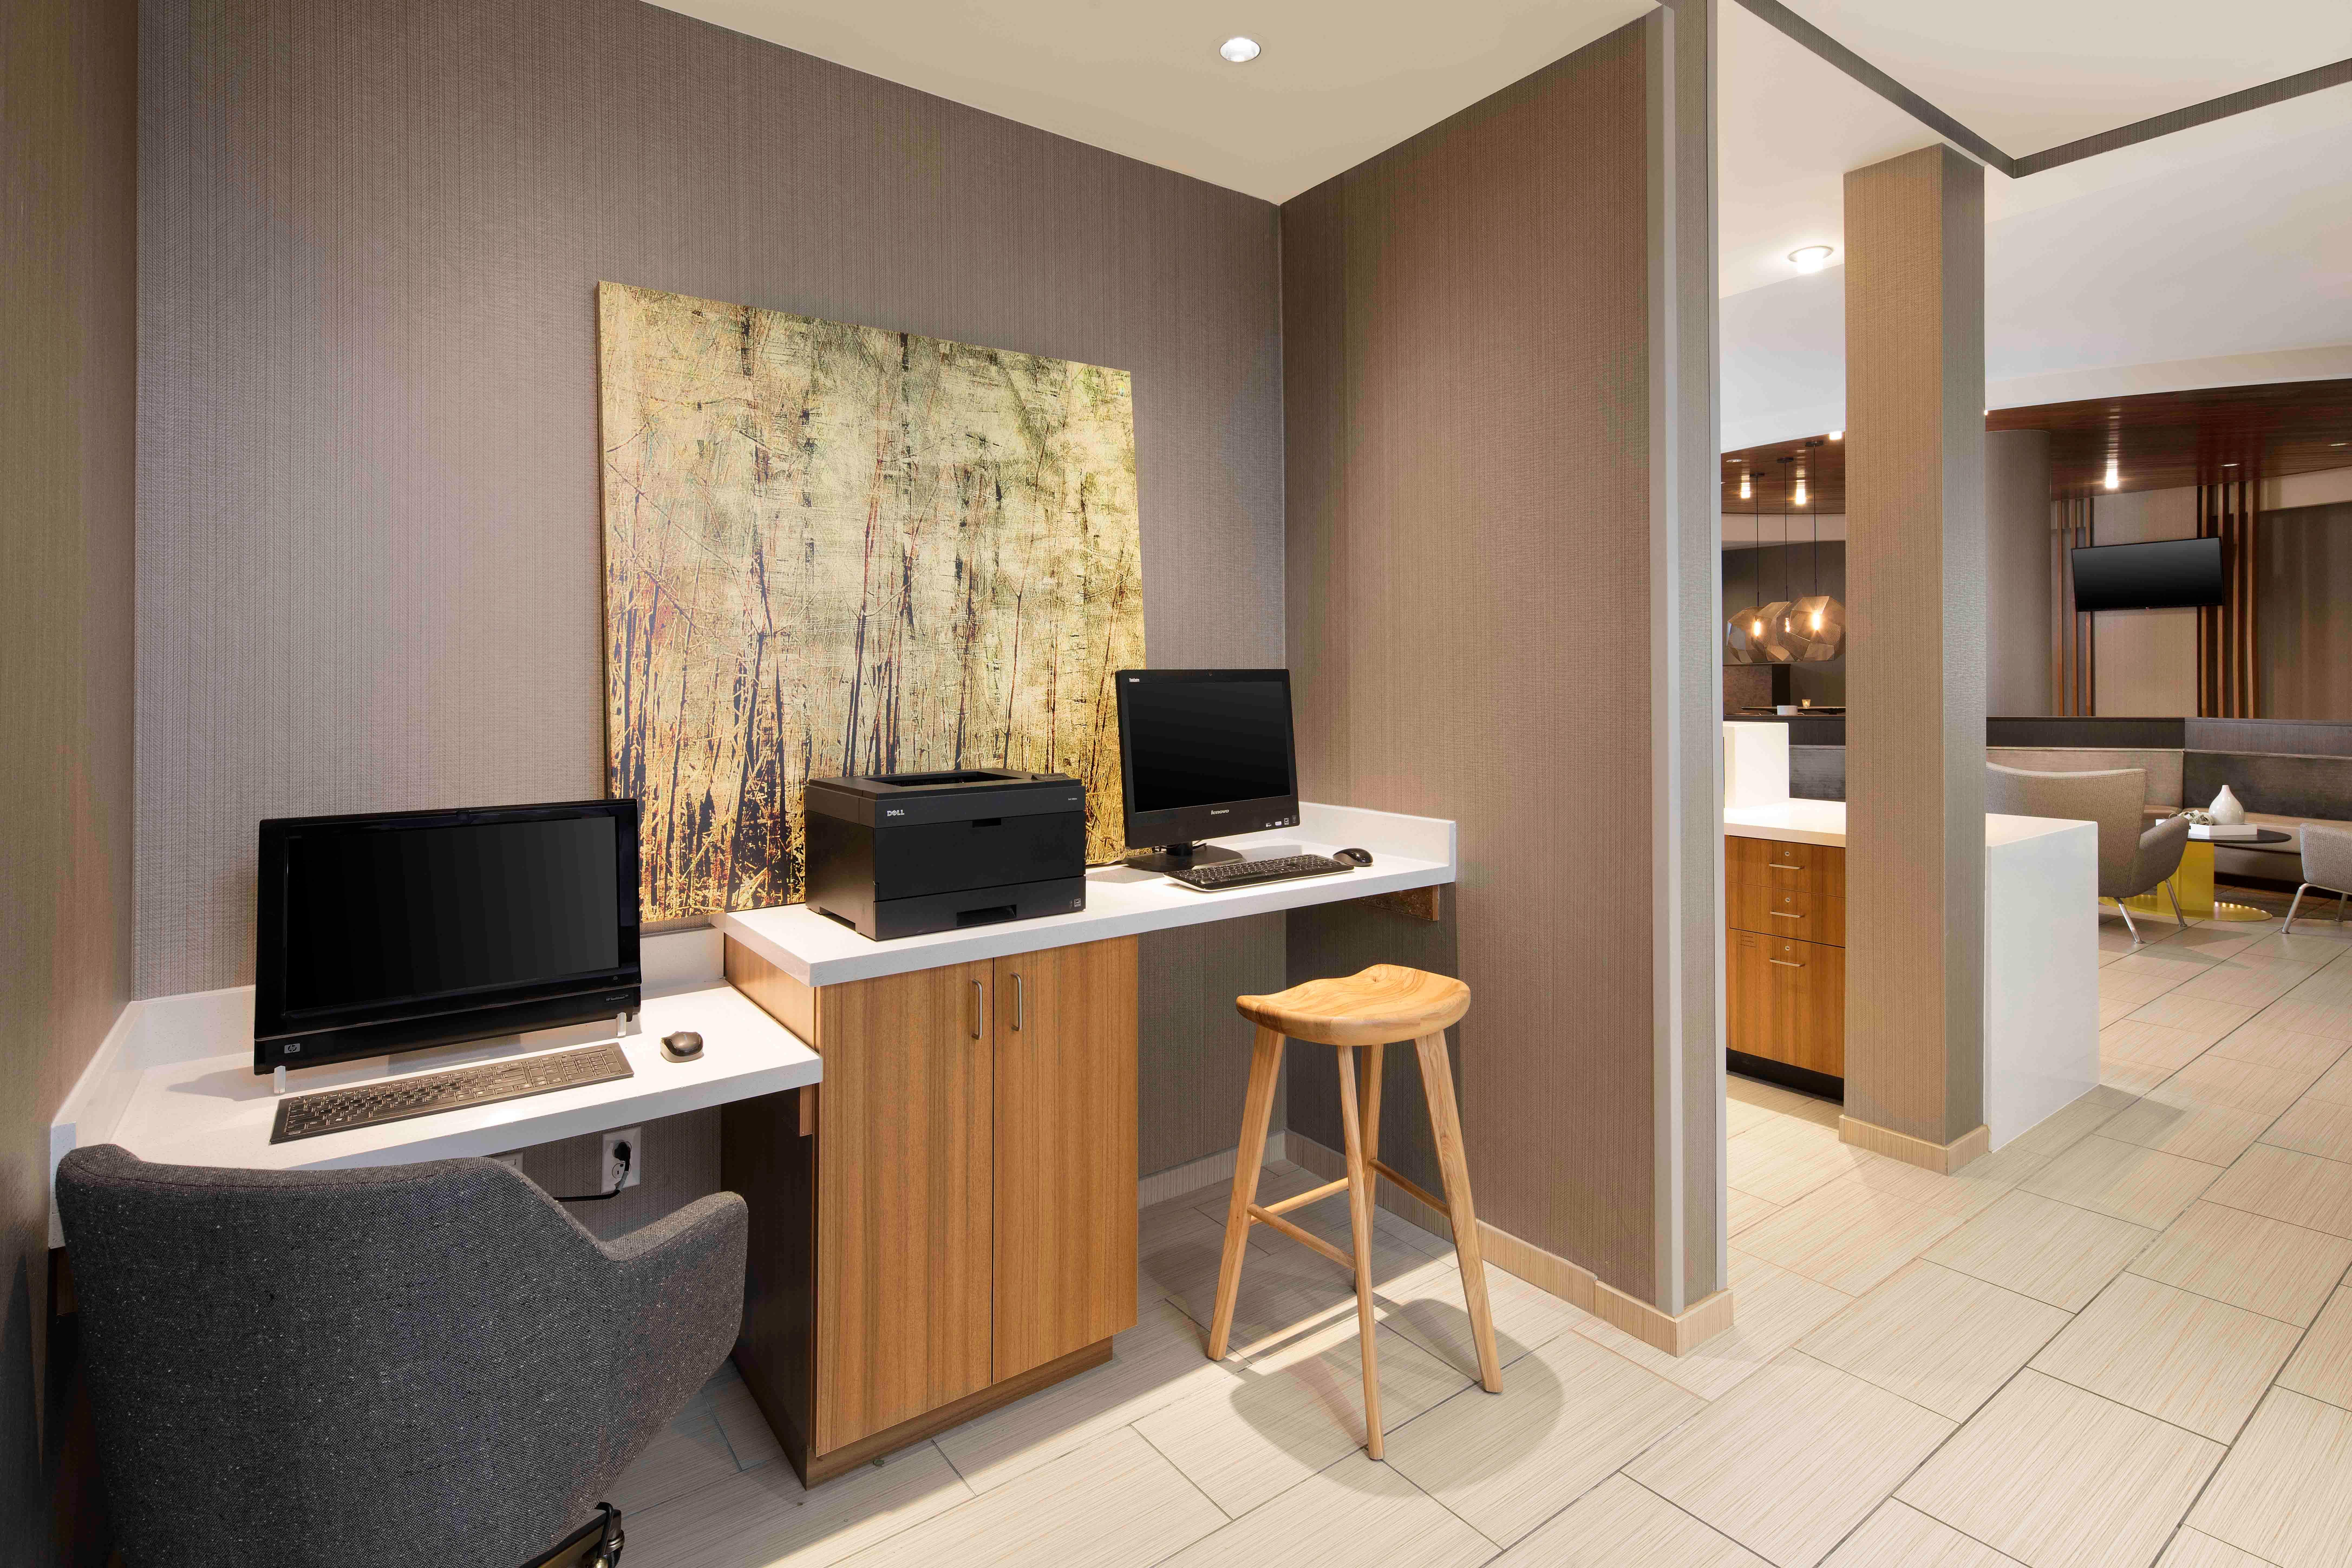 SpringHill Suites by Marriott Indianapolis Downtown image 7